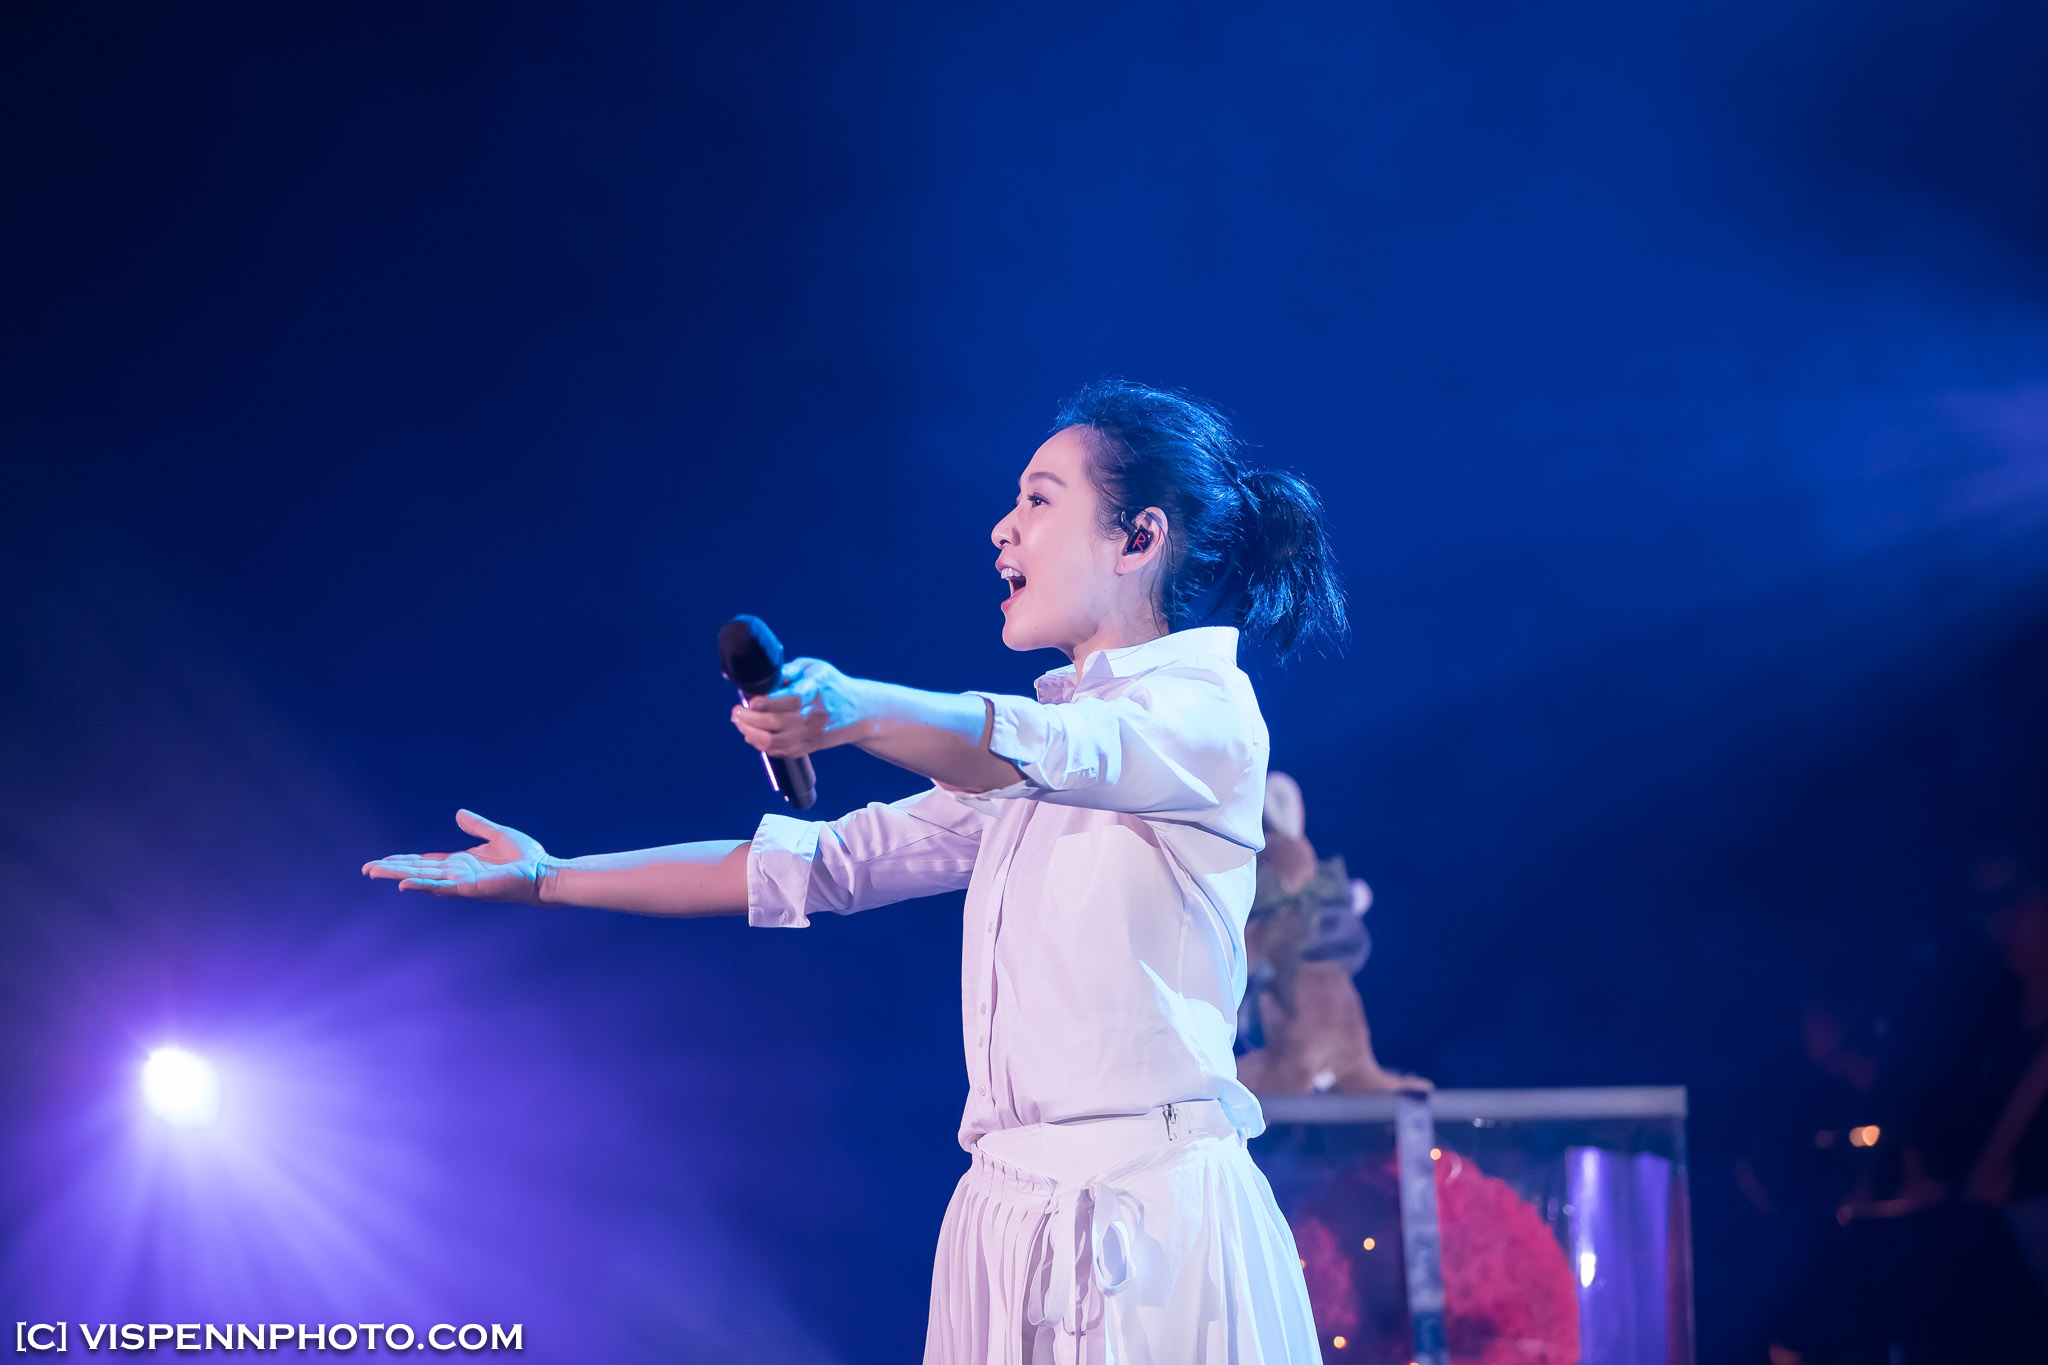 Melbourne CONCERTS Photography 墨尔本 演唱会 照片 摄影师 VISPENN ReneLiu 1P 3737 1DX VISPENN